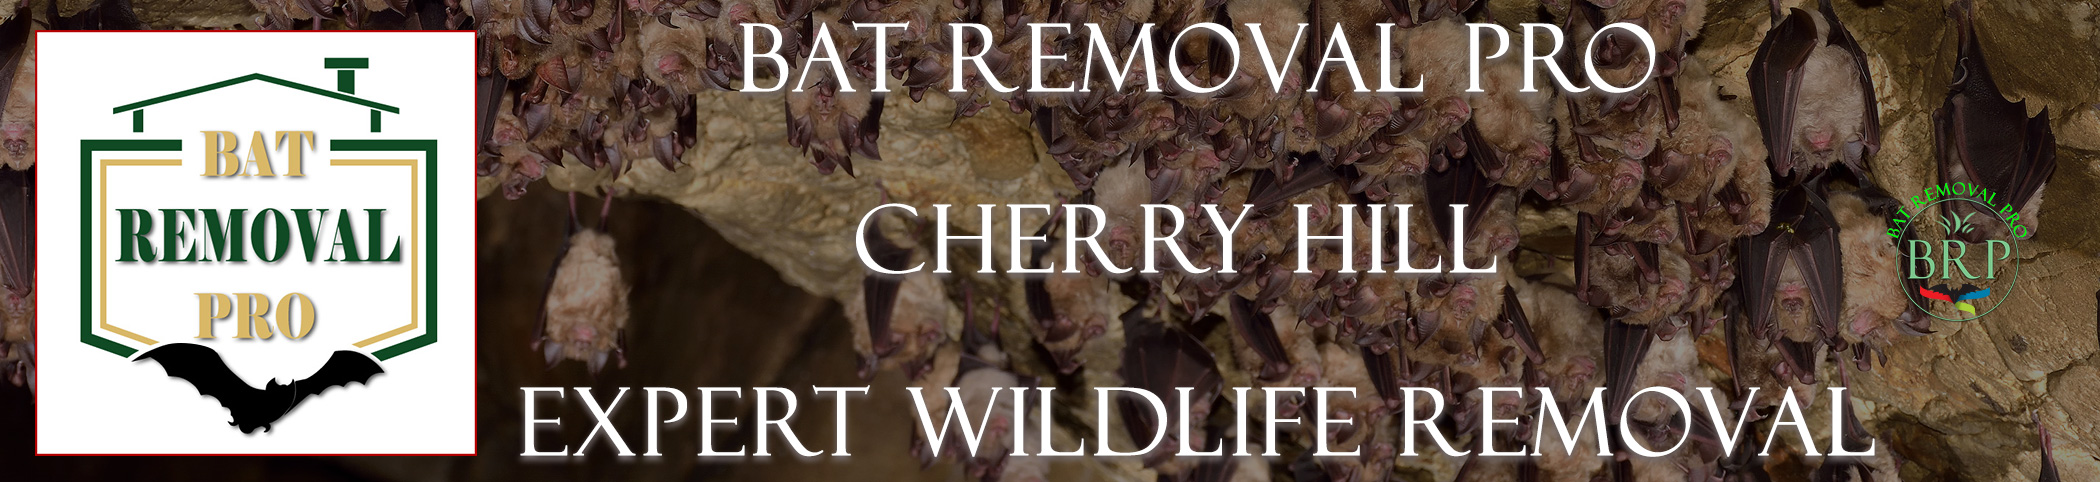 CHERRY-HILL-bat-removal-at-bat-removal-pro-header-image